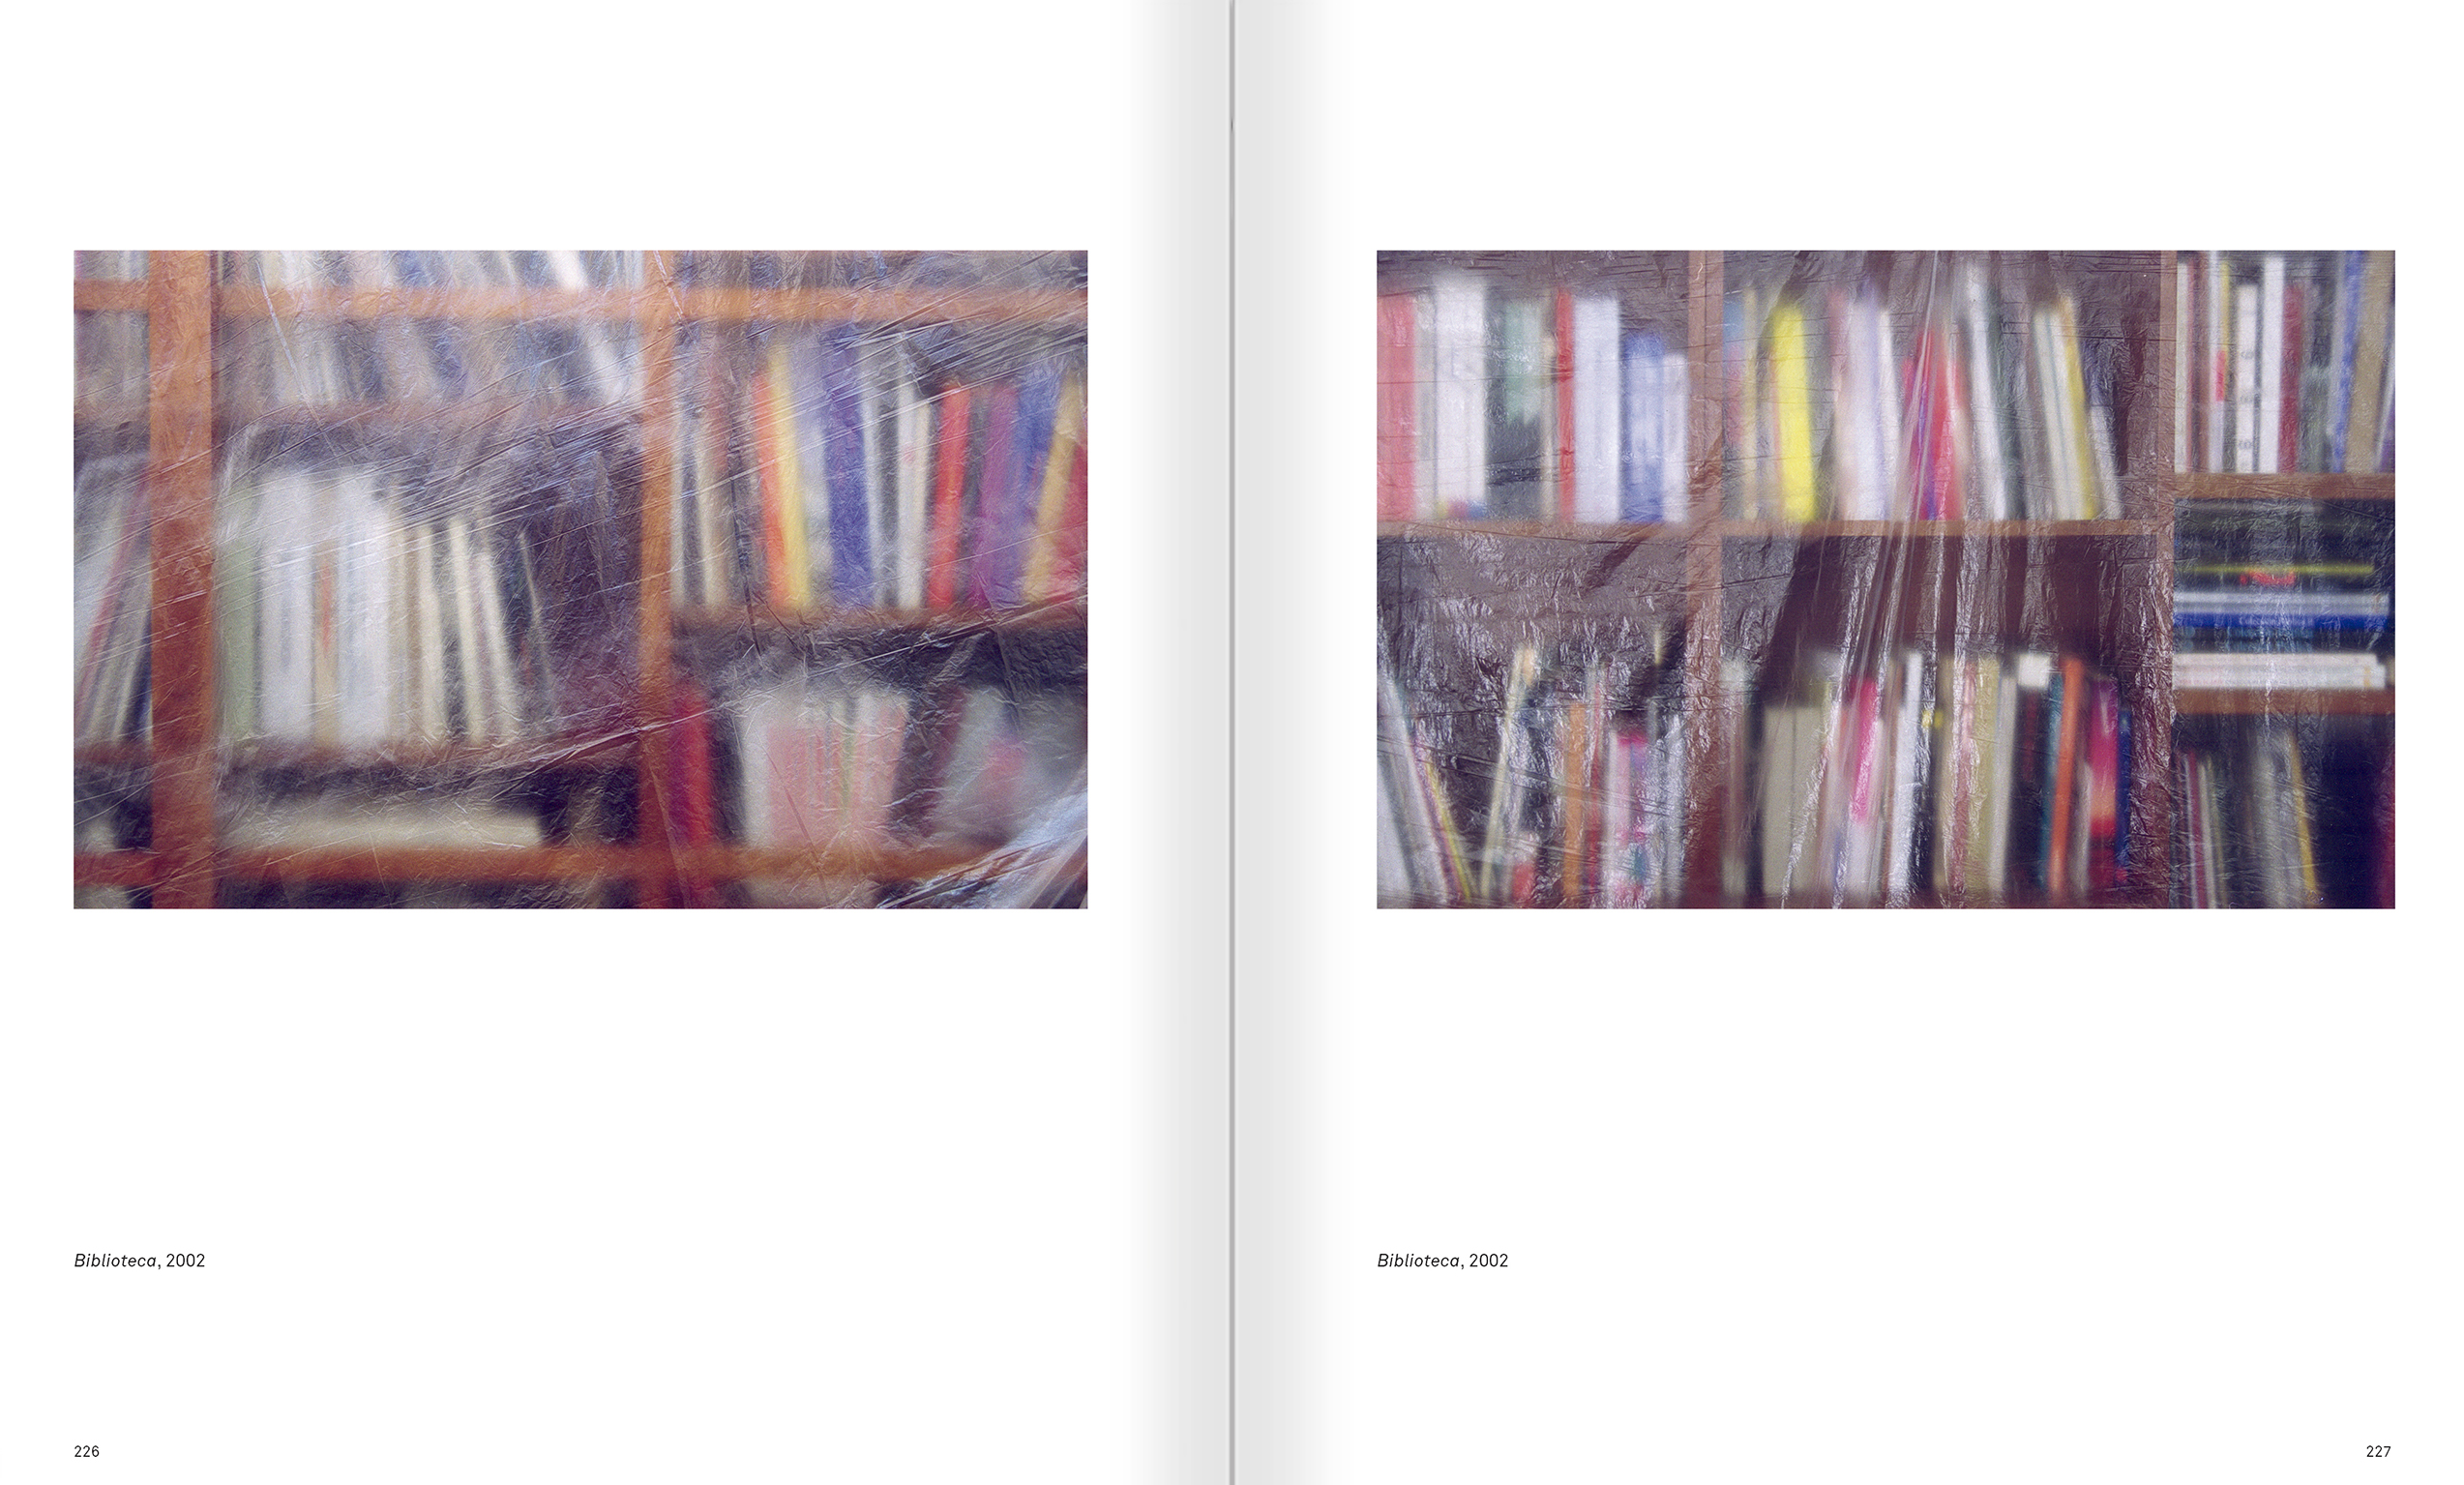 Selection from the catalogue 'Ignasi Aballí. 0-24 h', pages 226 and 227